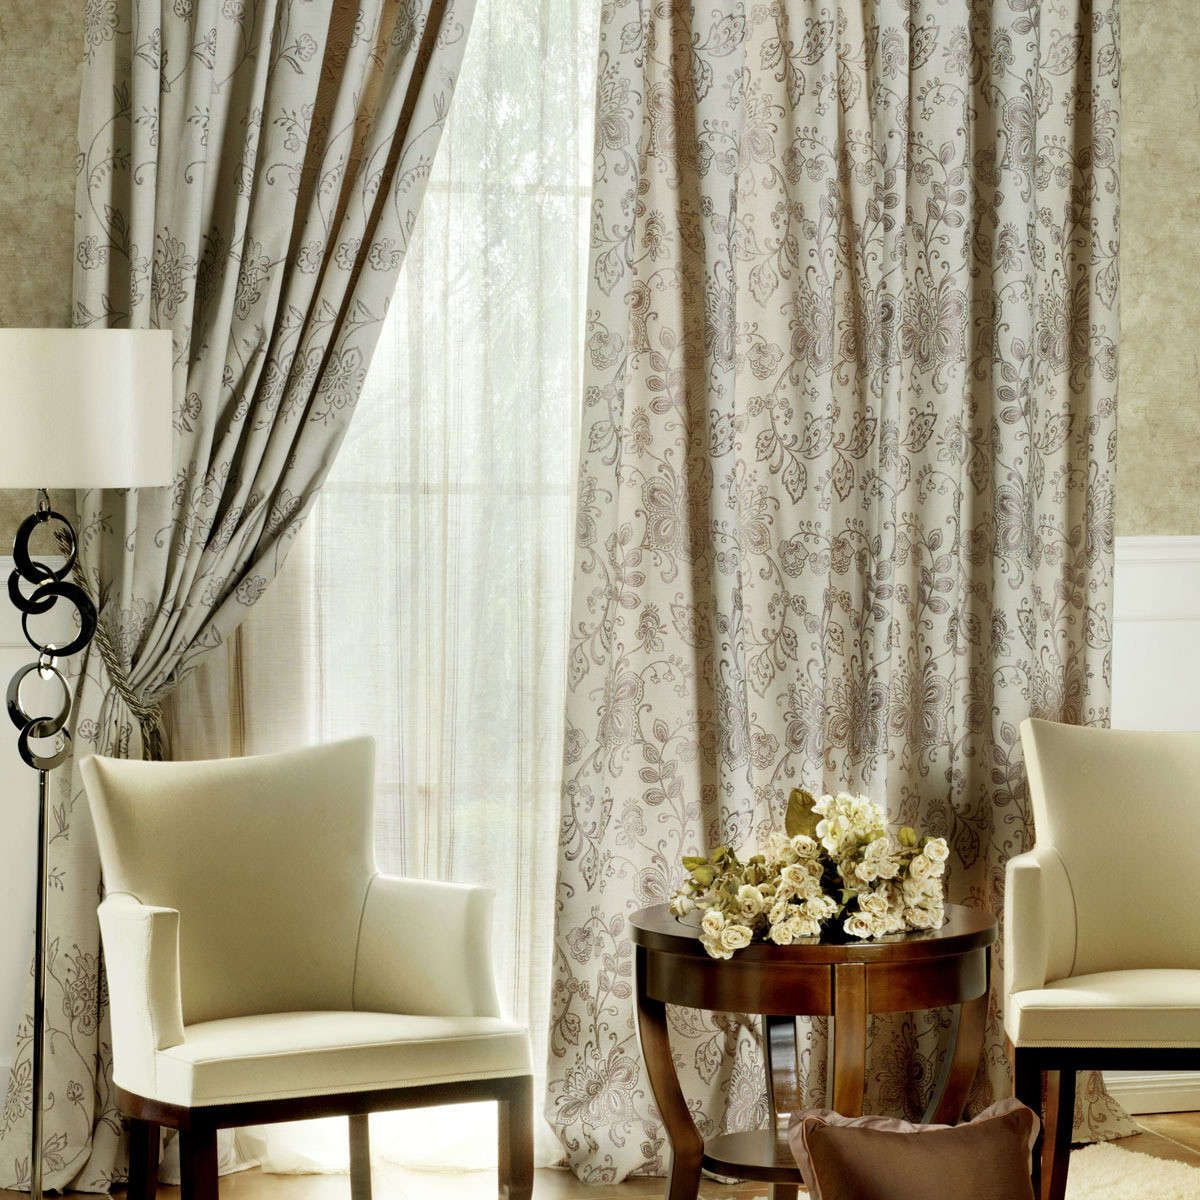 Living Room Curtain Designs Fair Užuolaidos  Domus Lumina Užuolaidos  Pinterest  House Review